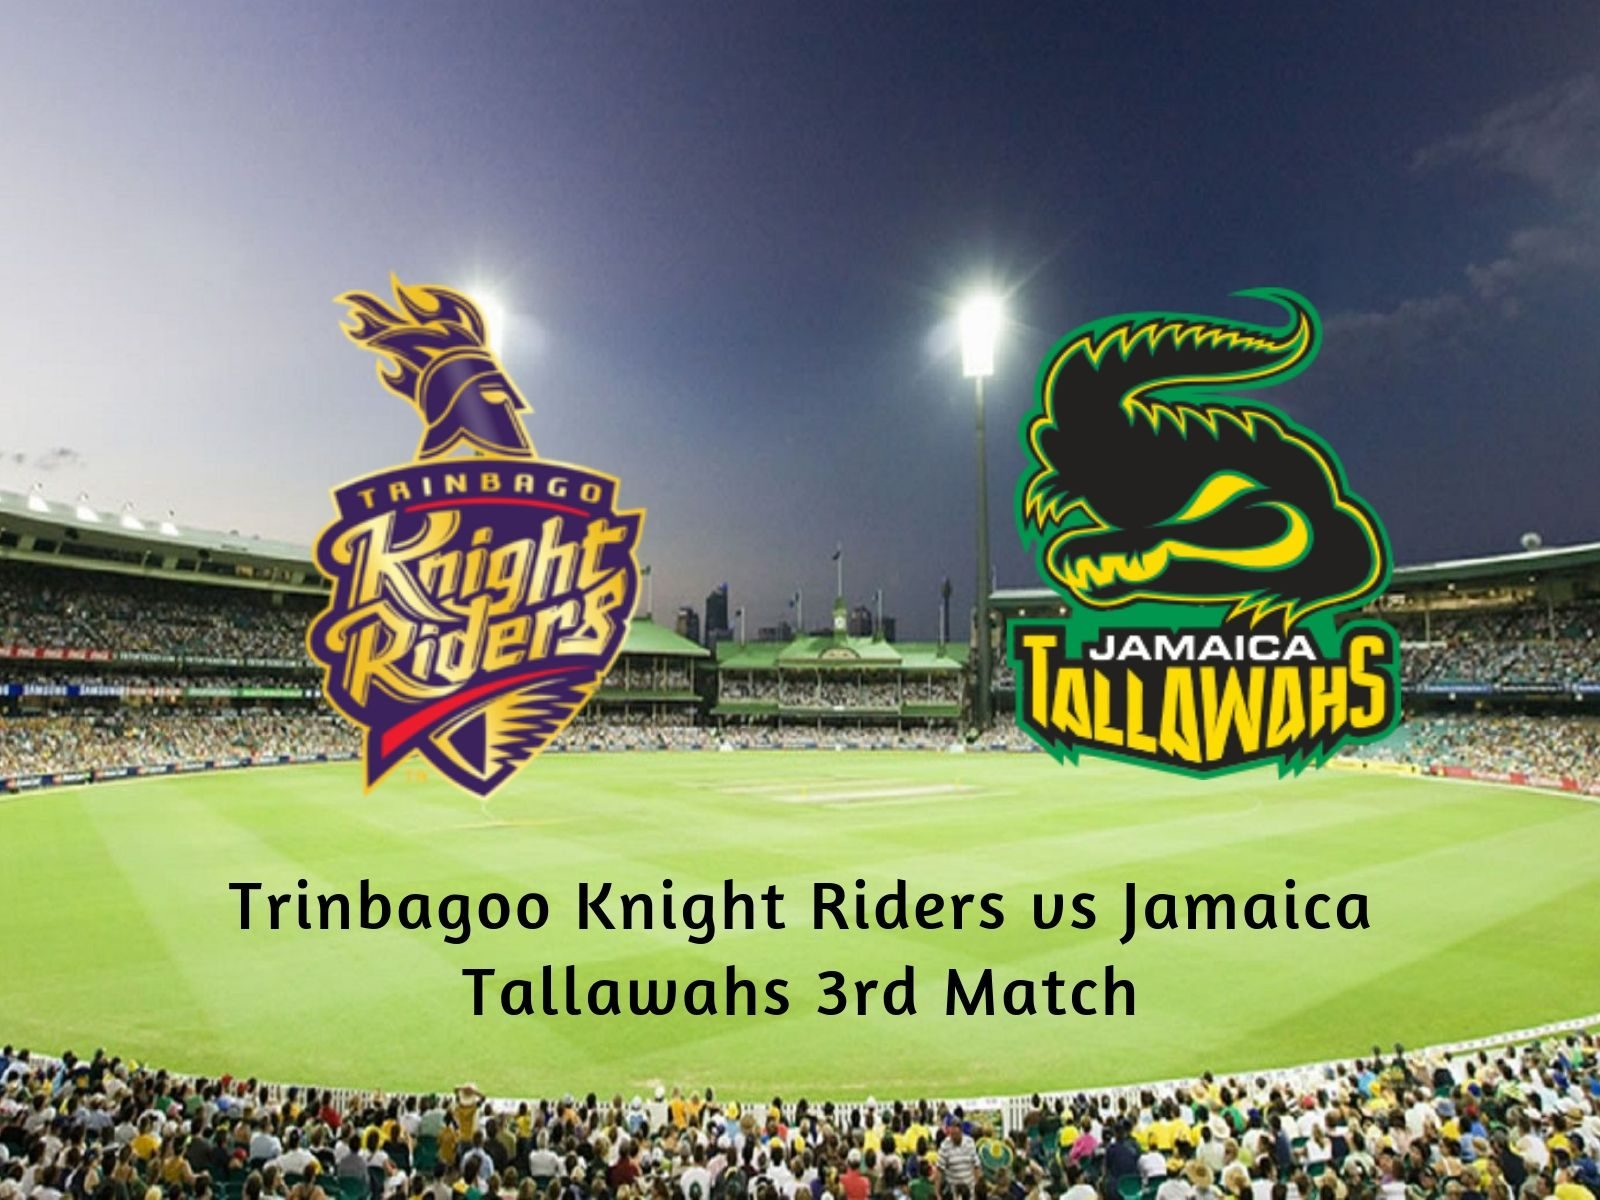 Trinbago Knight Riders vs Jamaica Tallawahs, 3rd Match Betting Tips